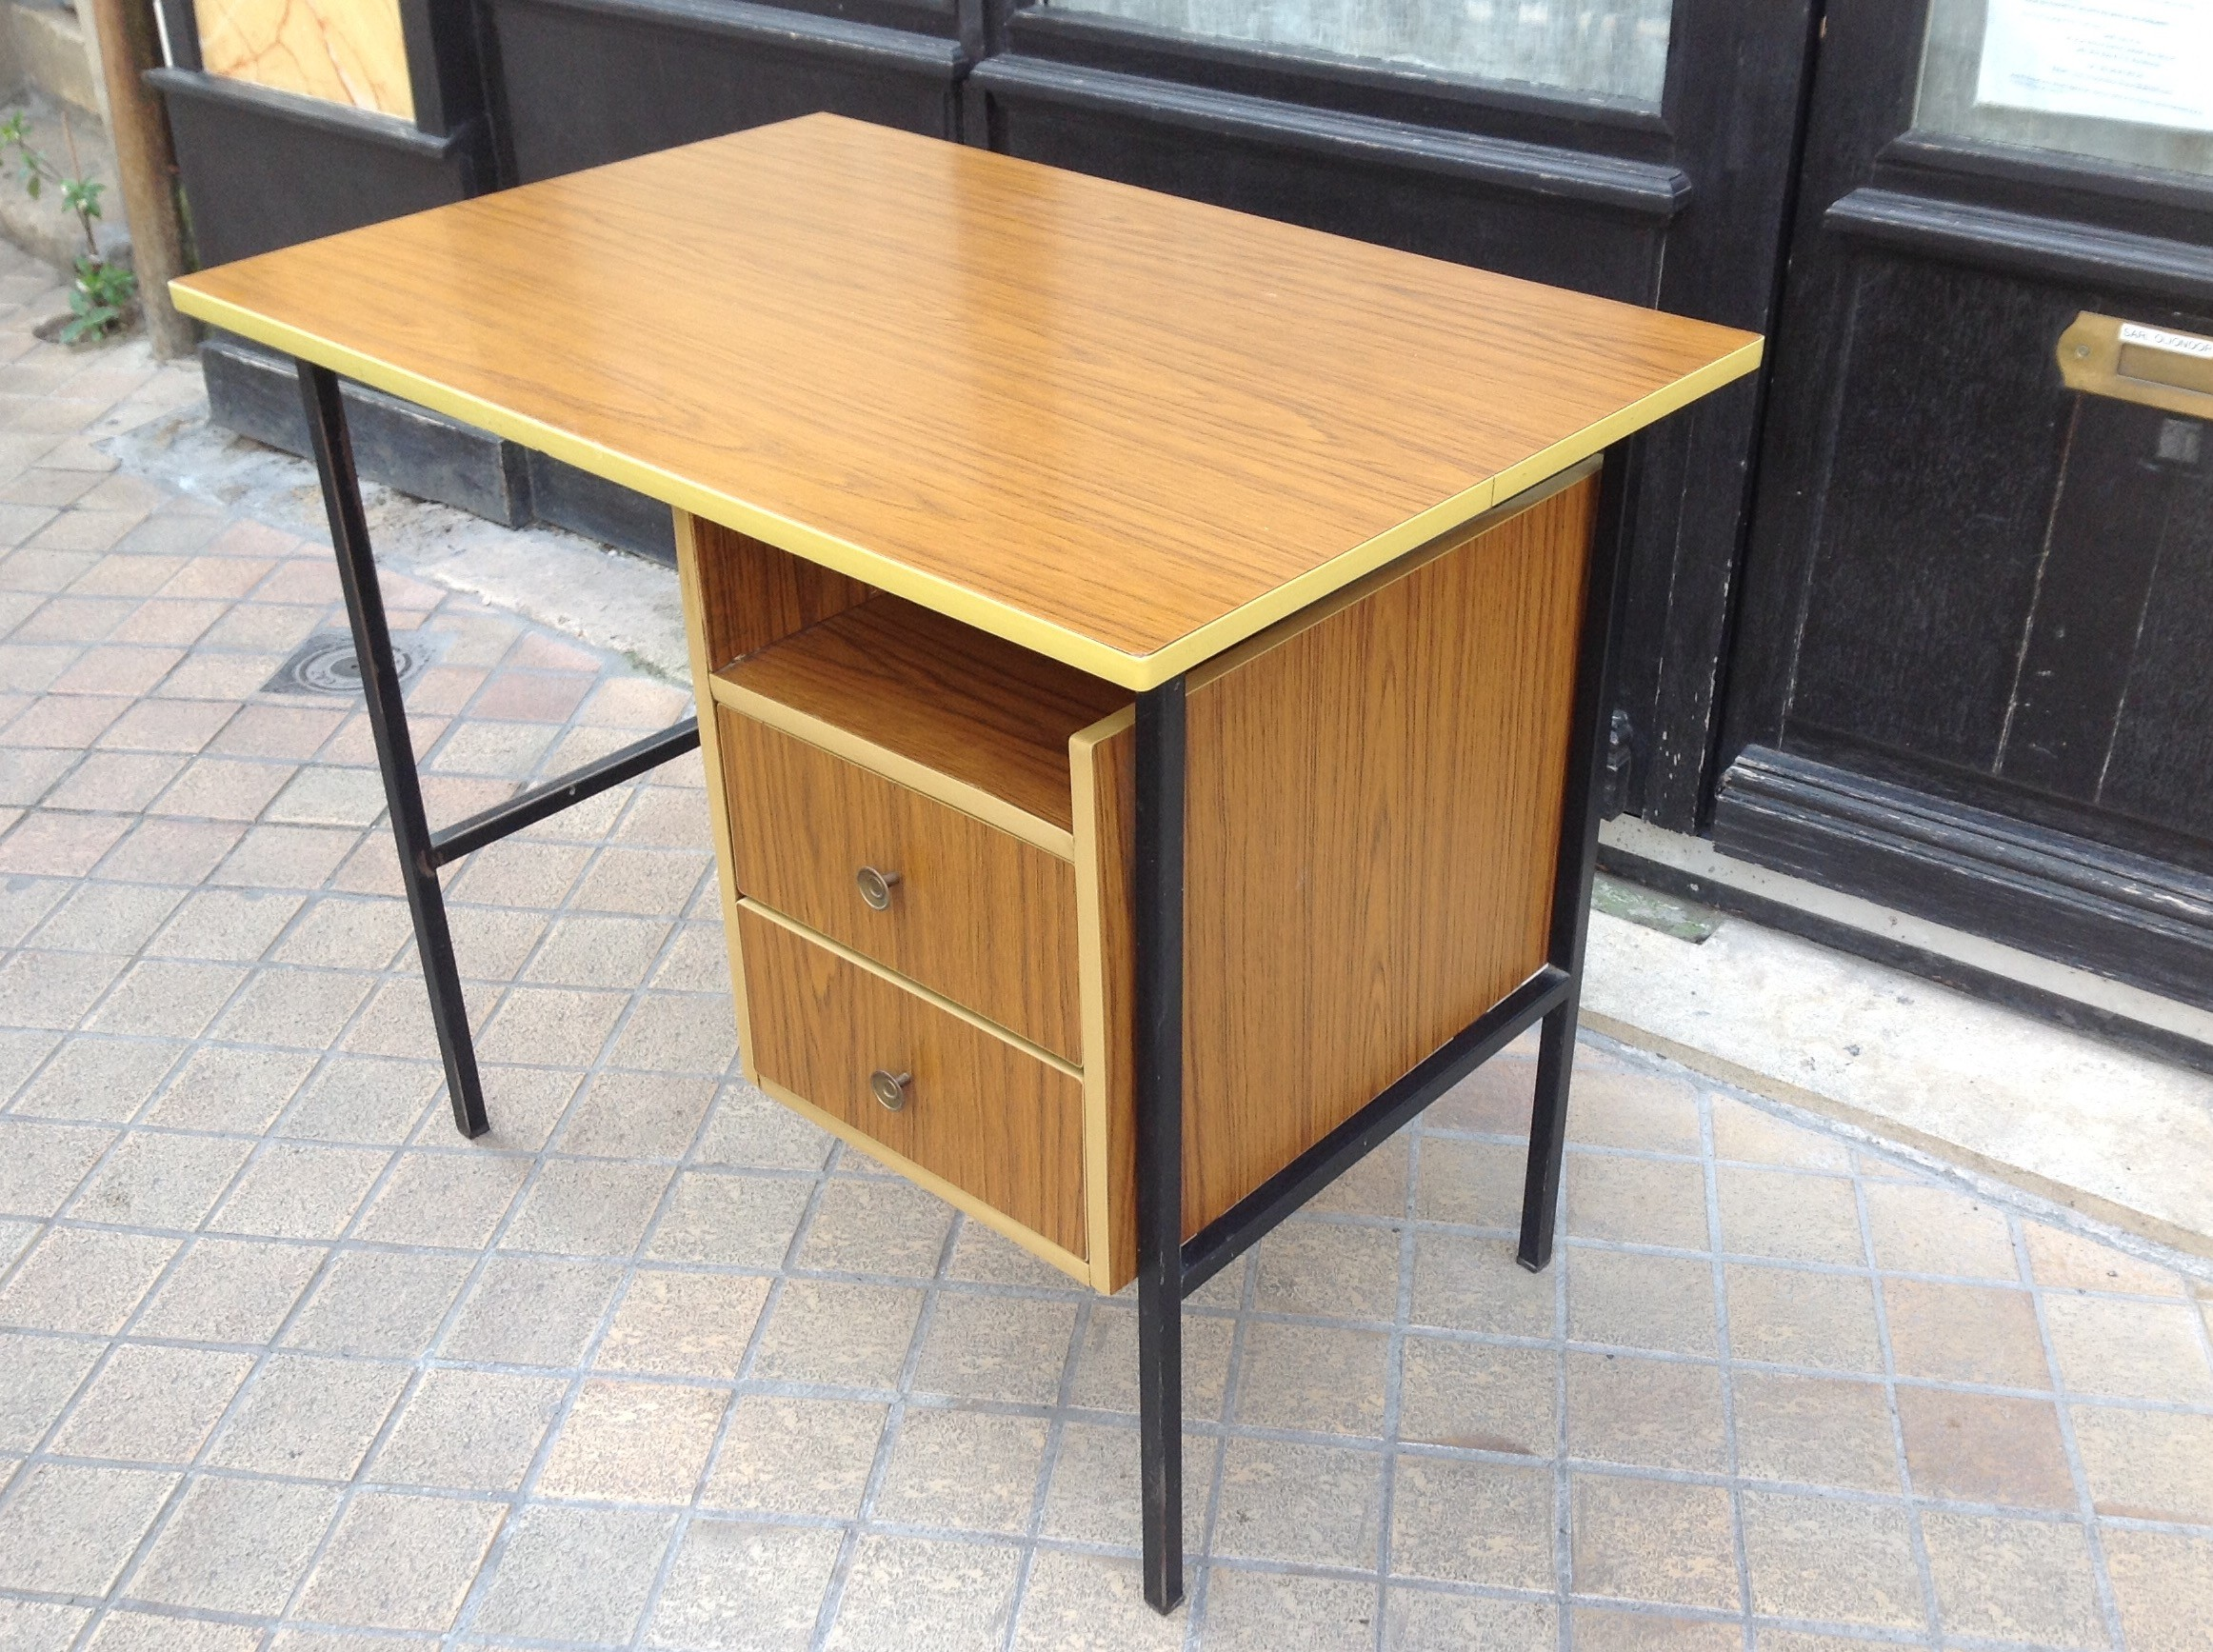 Vintage Office Desk In Formica 1950s Previous Next